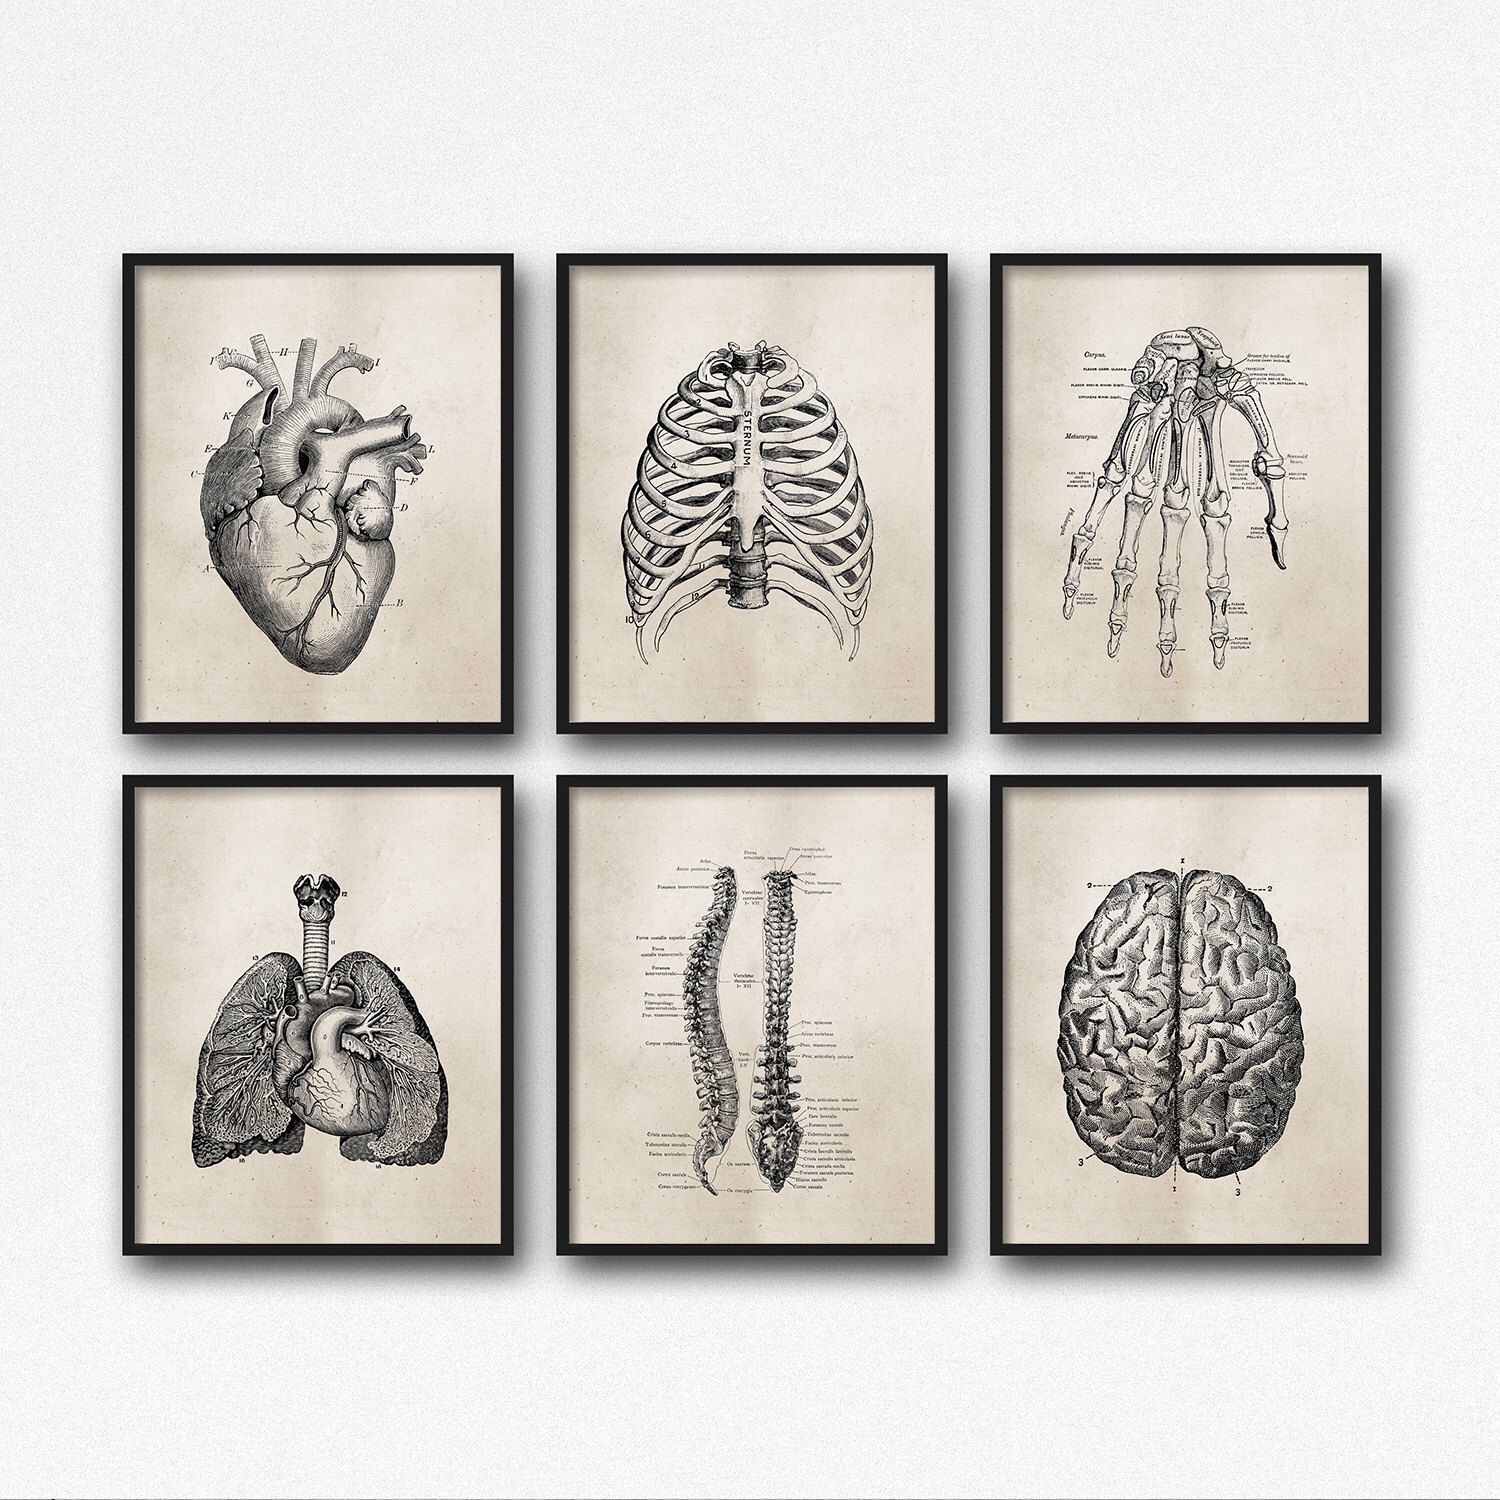 "Set of Six (6) Art Prints - 8X10"" or 11X14"" - Science Anatomy Wall Art - Neutral Vintage Effect - Medical Student Gift - Office - SKU:892 by ThePrintAnnex on Etsy https://www.etsy.com/listing/265247755/set-of-six-6-art-prints-8x10-or-11x14"